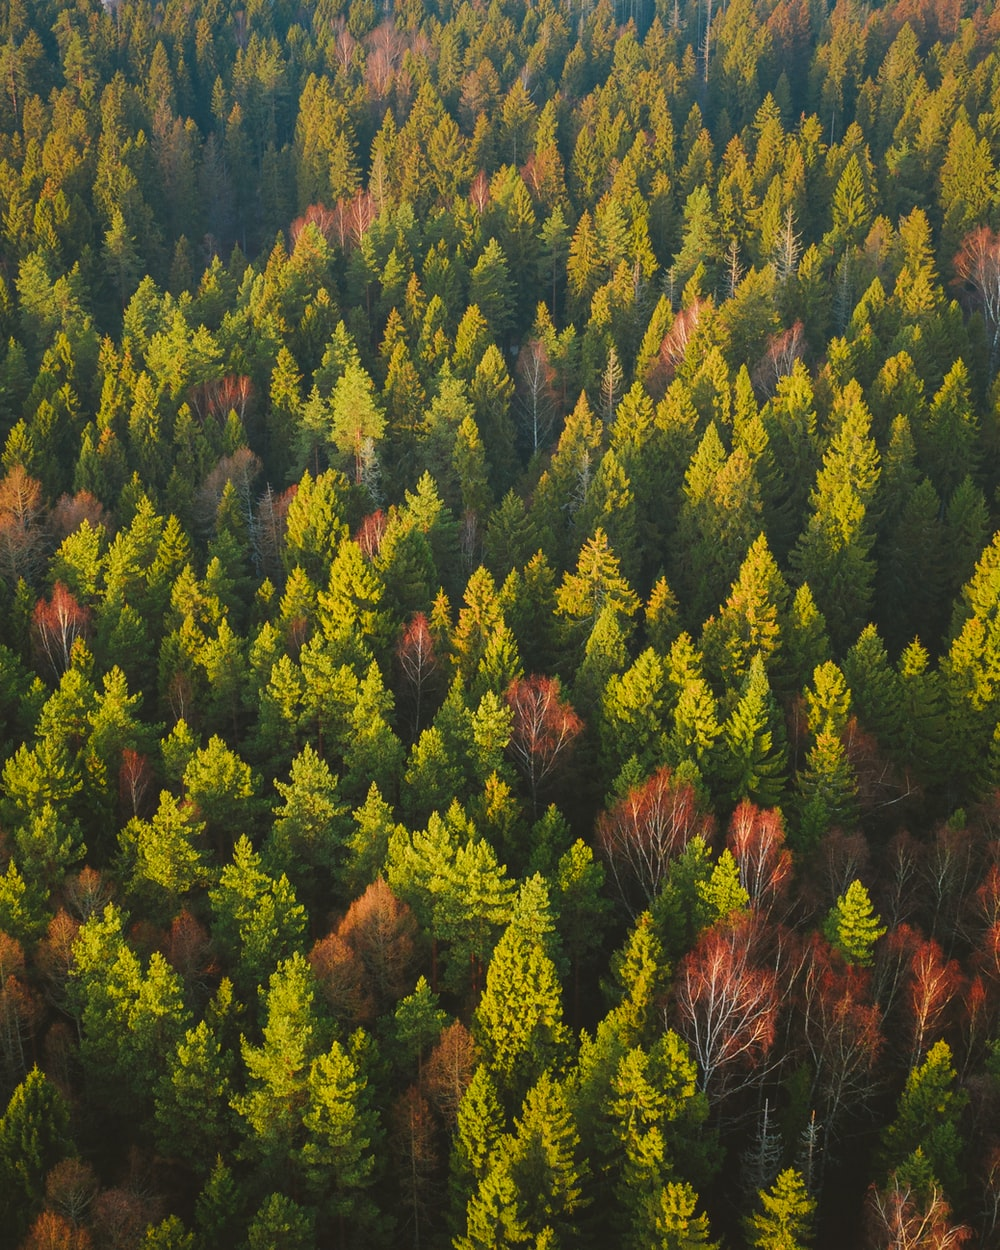 aerial photograph of trees